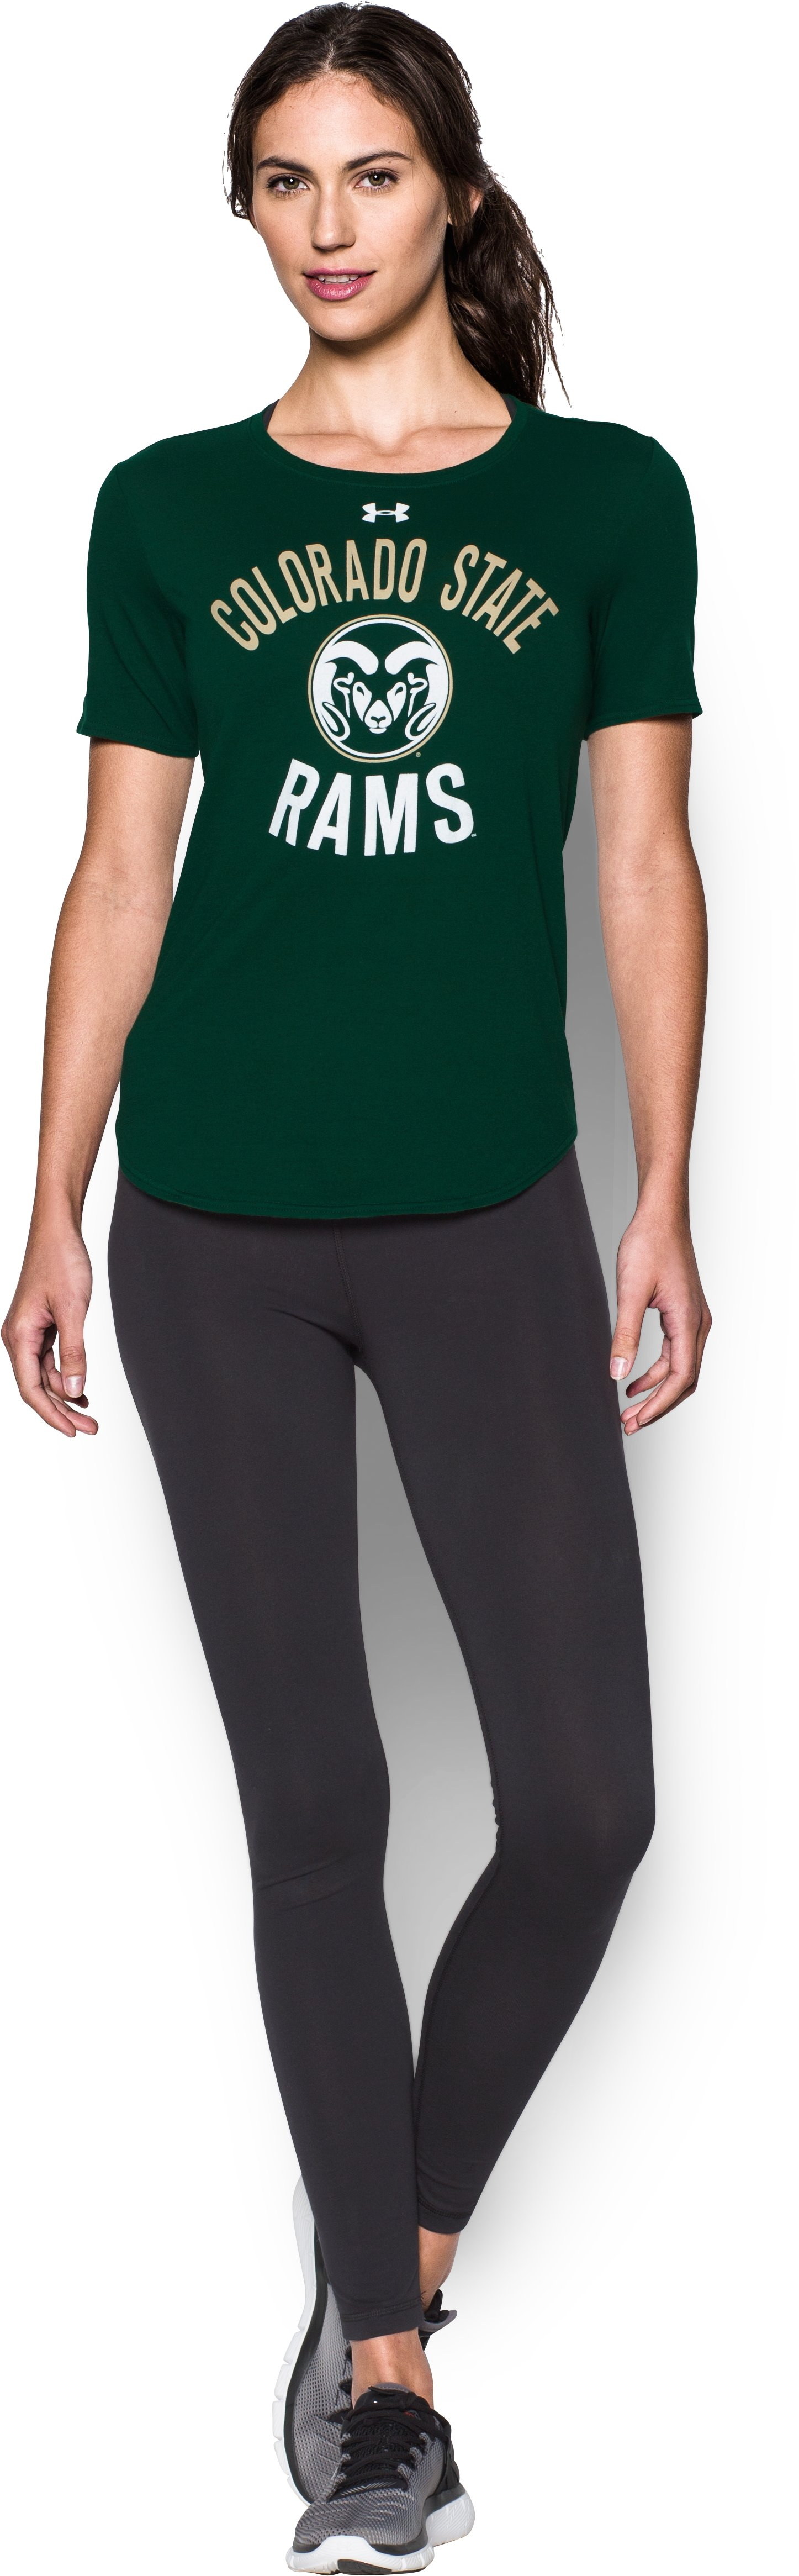 Women's Colorado State Charged Cotton® Short Sleeve T-Shirt, Forest Green, zoomed image